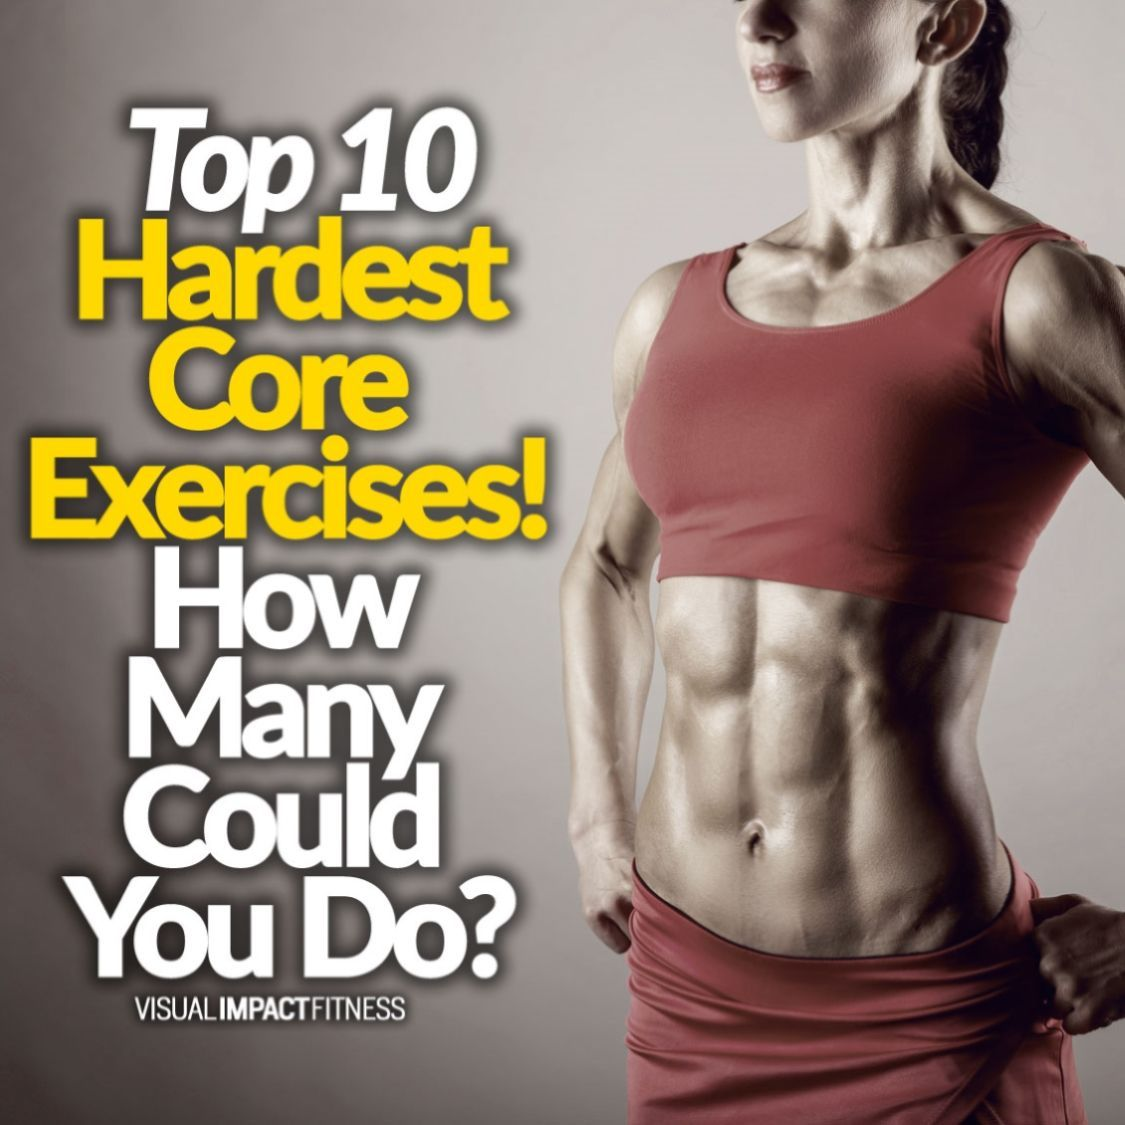 Top 10 Hardest Core Exercises! How Many Could You Do